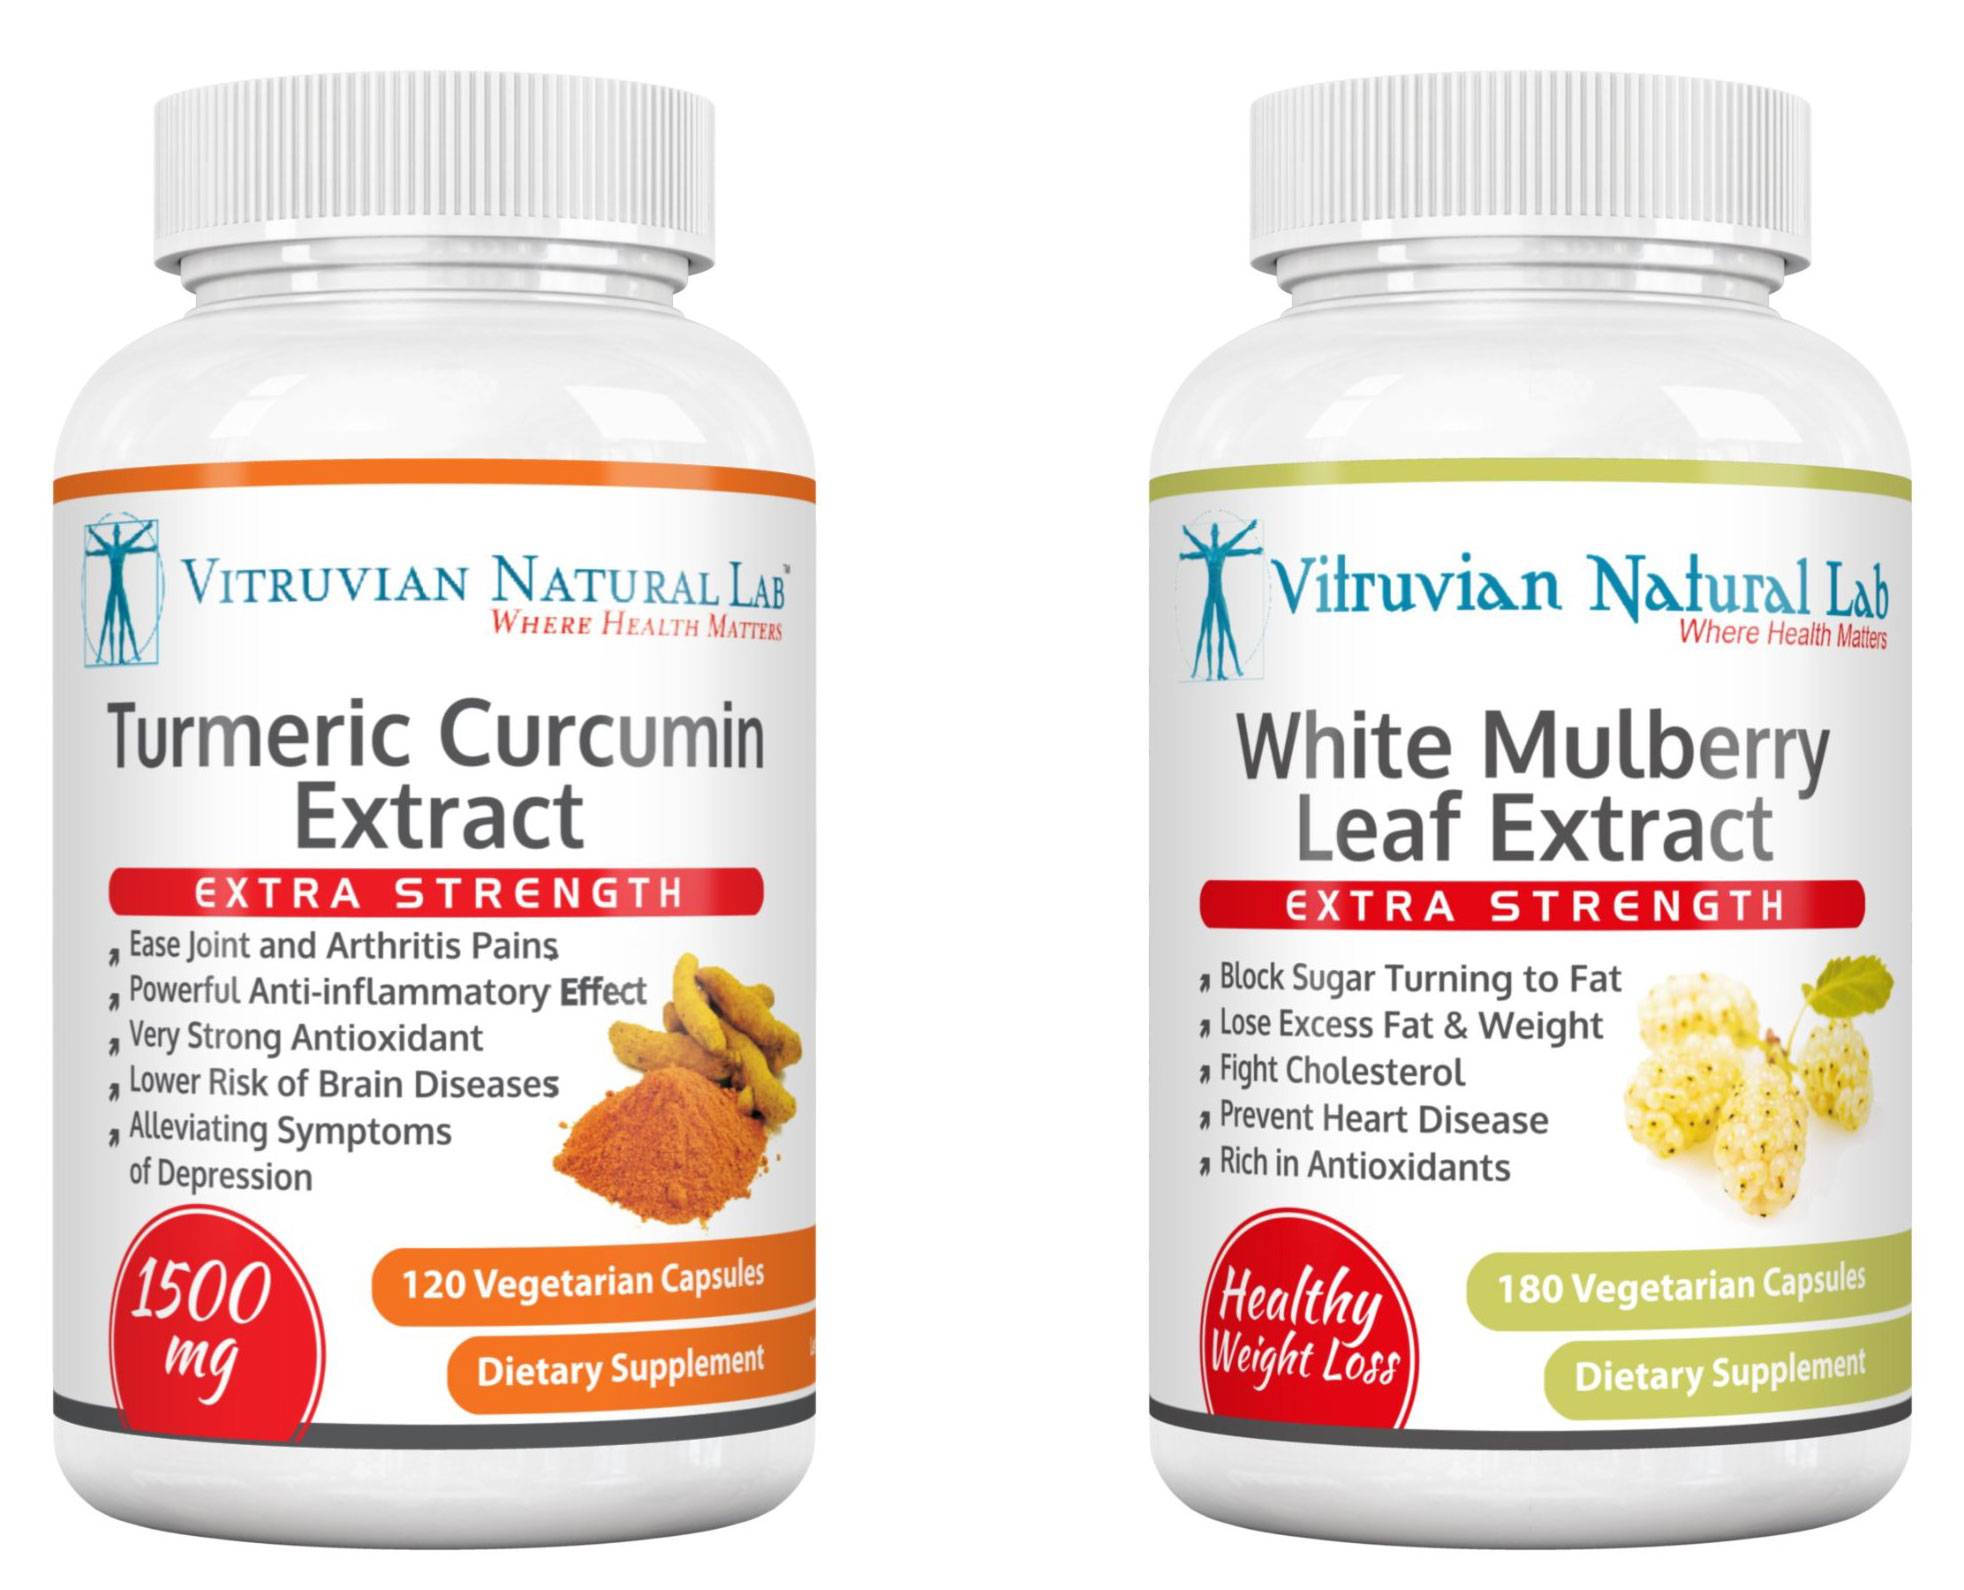 Turmeric Curcumin Extract and White Mulberry Leaf Extract